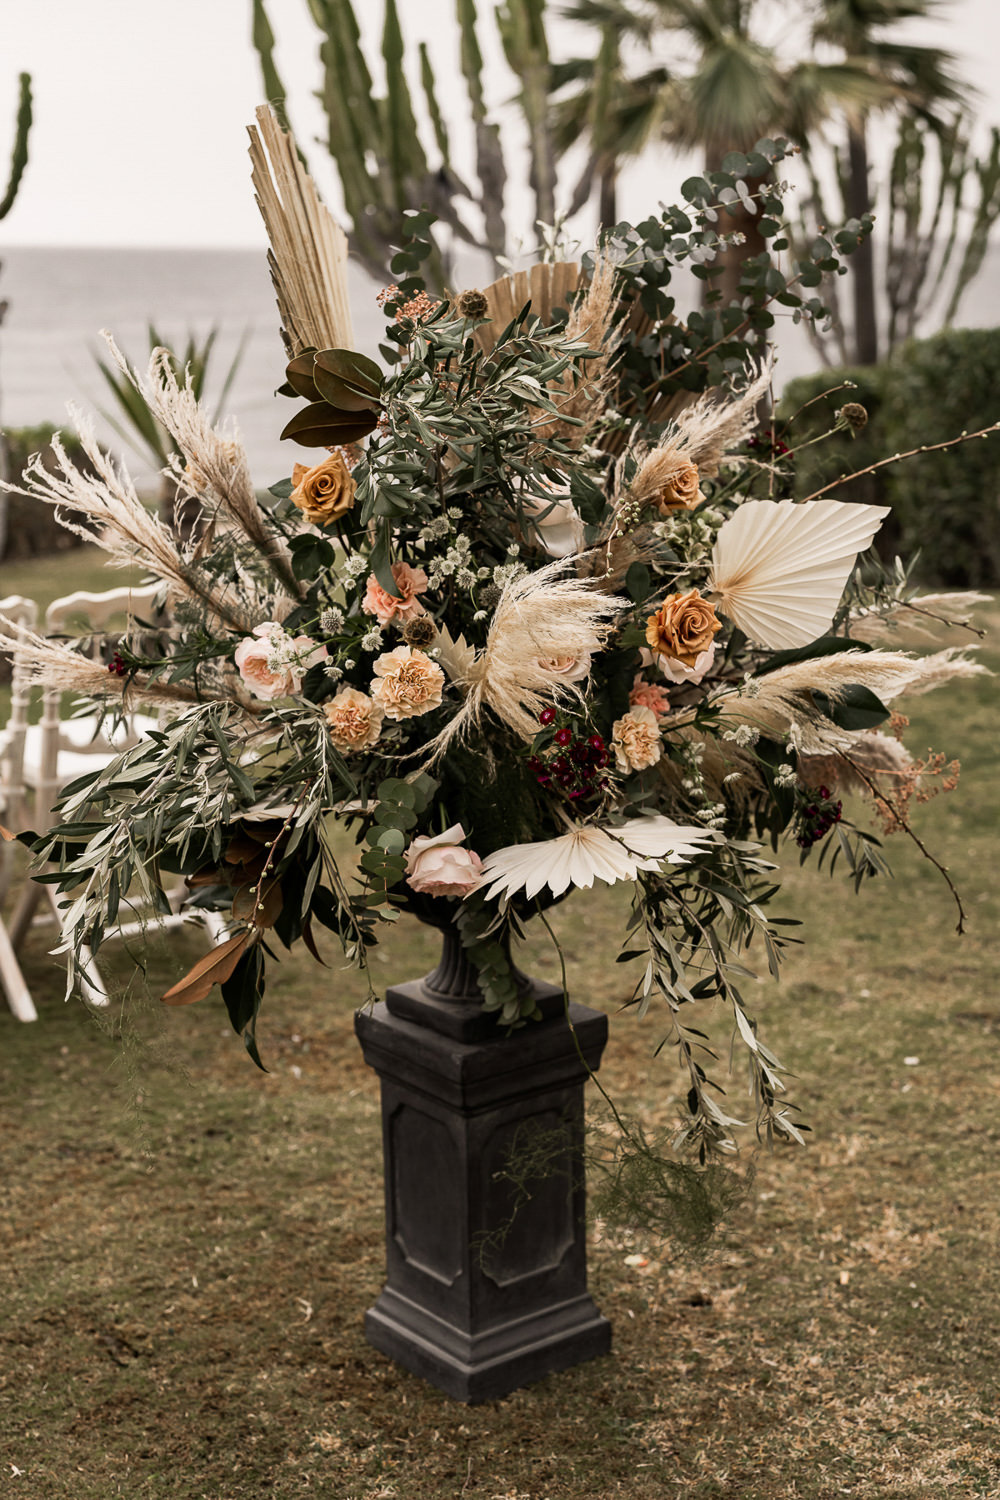 Flowers Dried Palm Leaves Greenery Foliage Orange Rose Pampas Grass Marbella Elopement Wedding Nora Photography